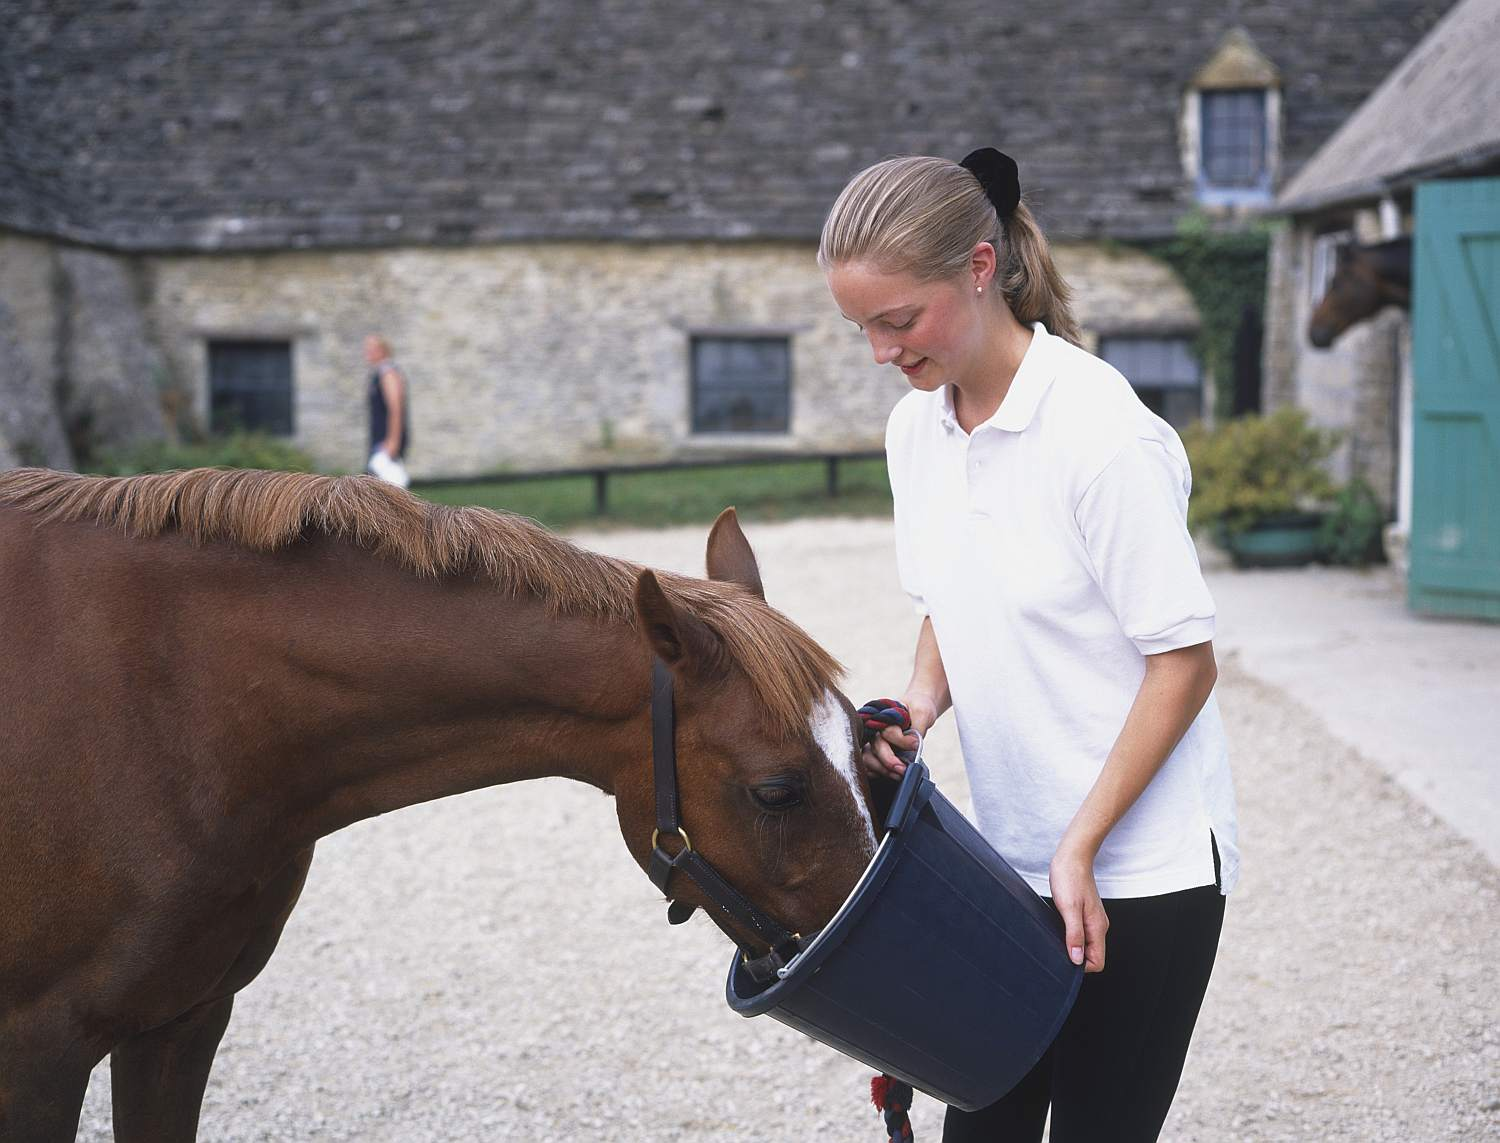 Girl feeding a brown horse out of bucket..